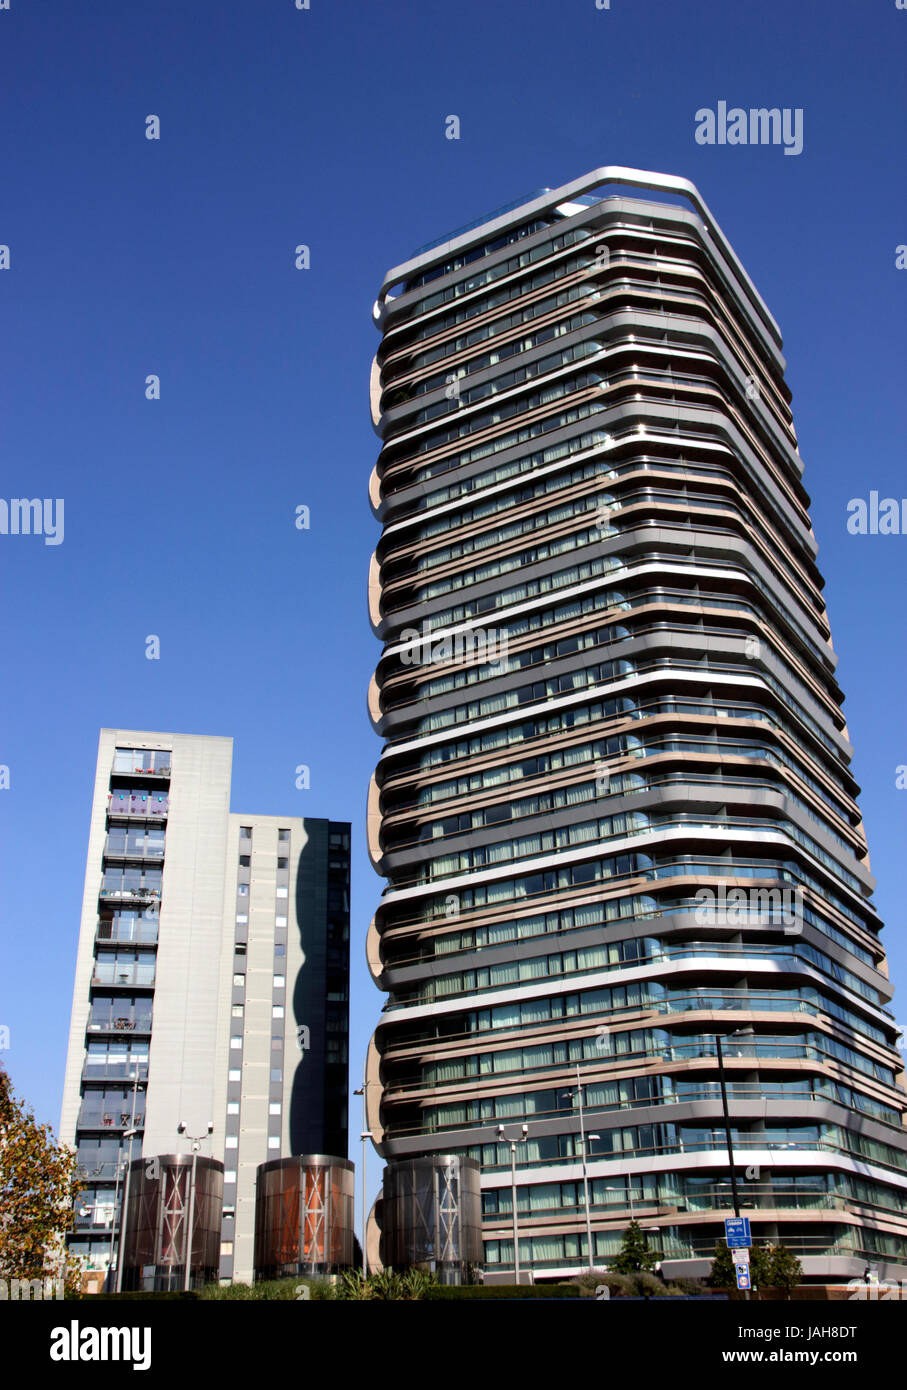 Canaletto Tower City Road Islington London Stock Photo